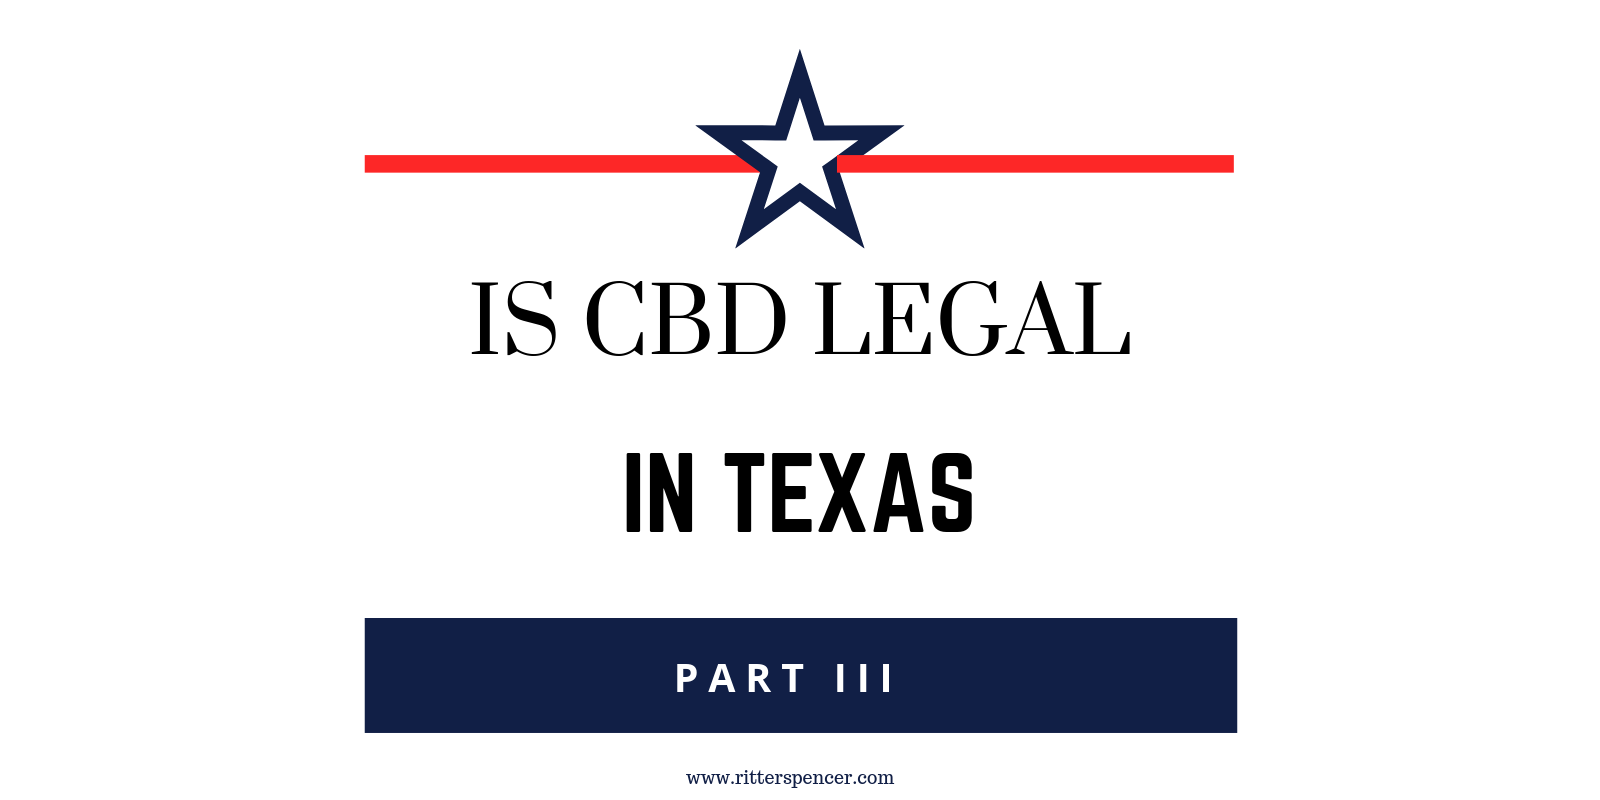 Is CBD Legal? Part III: Texas Law